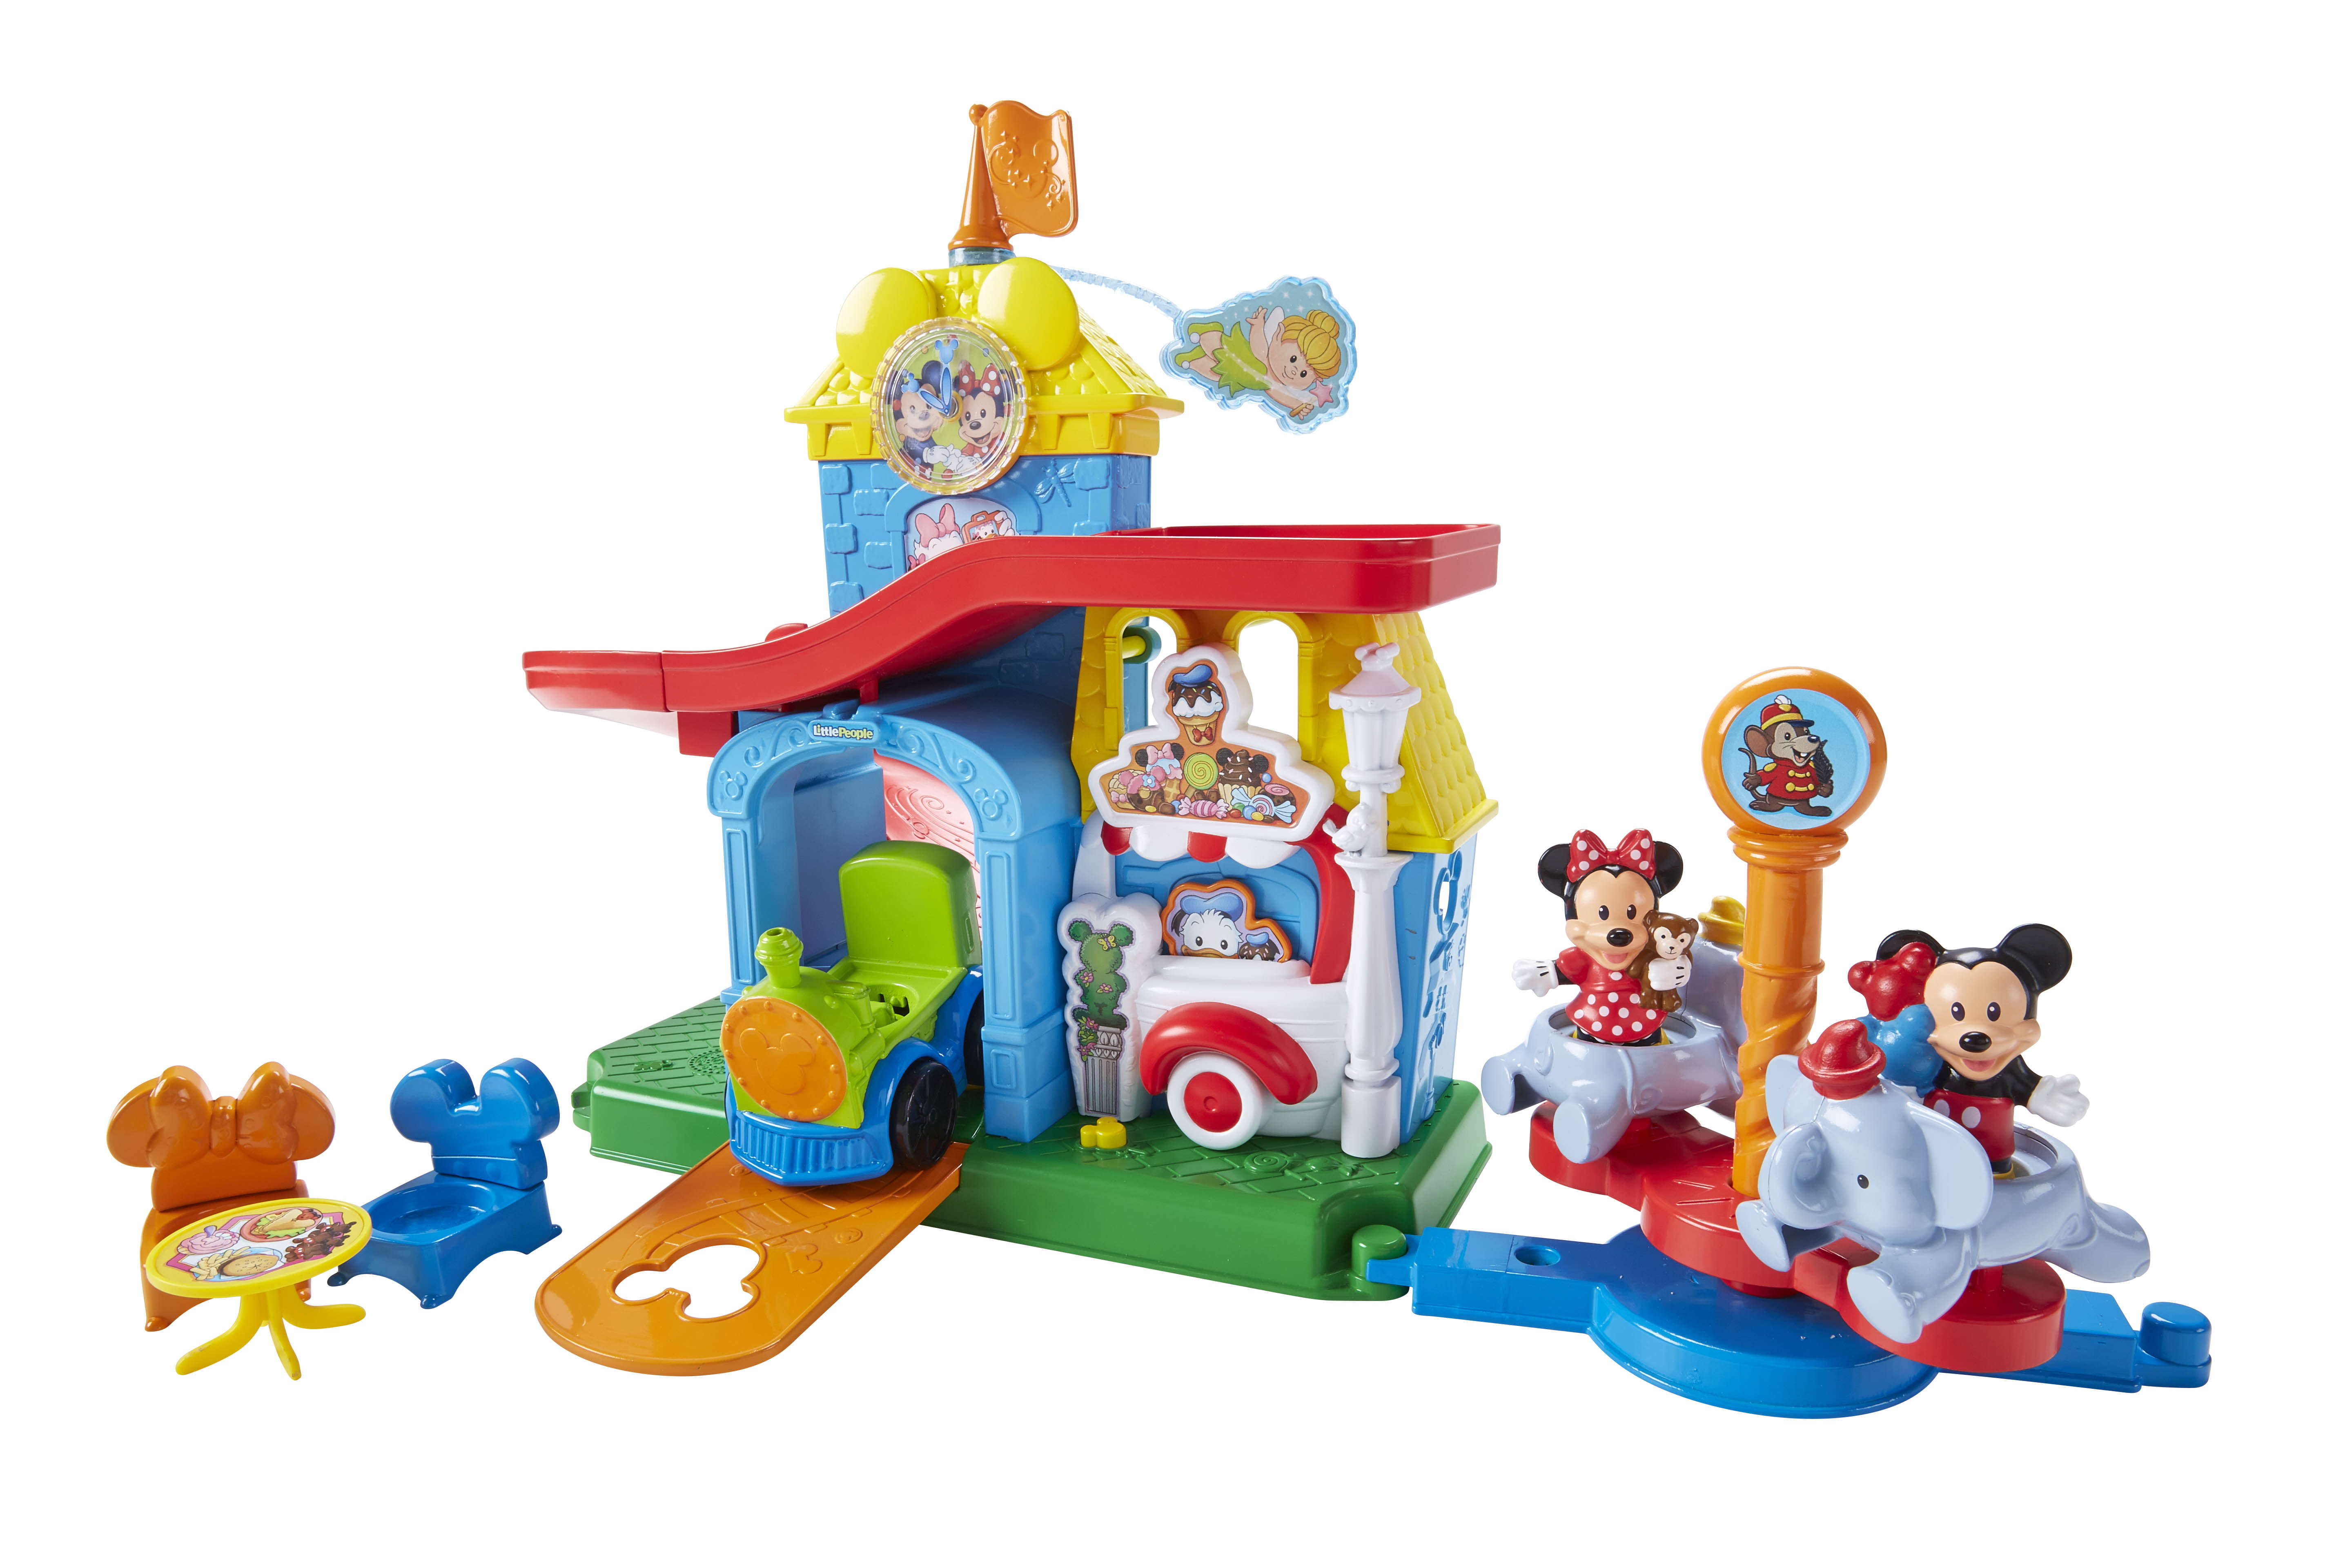 Magical Day at Disney Playset by Little People by Little People